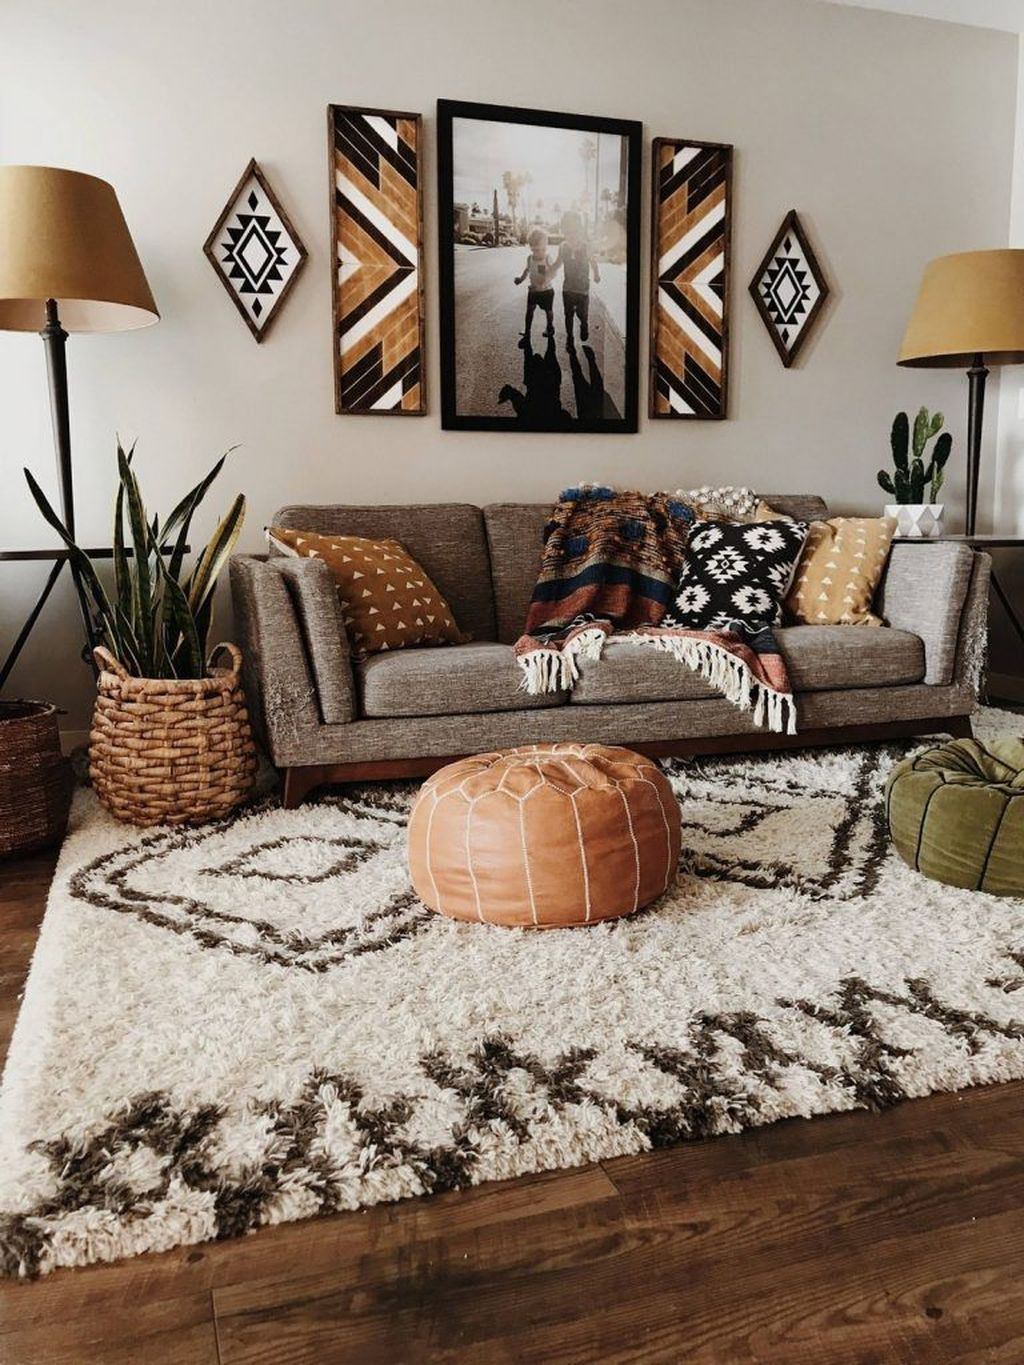 The Best Rustic Bohemian Living Room Decor Ideas 19